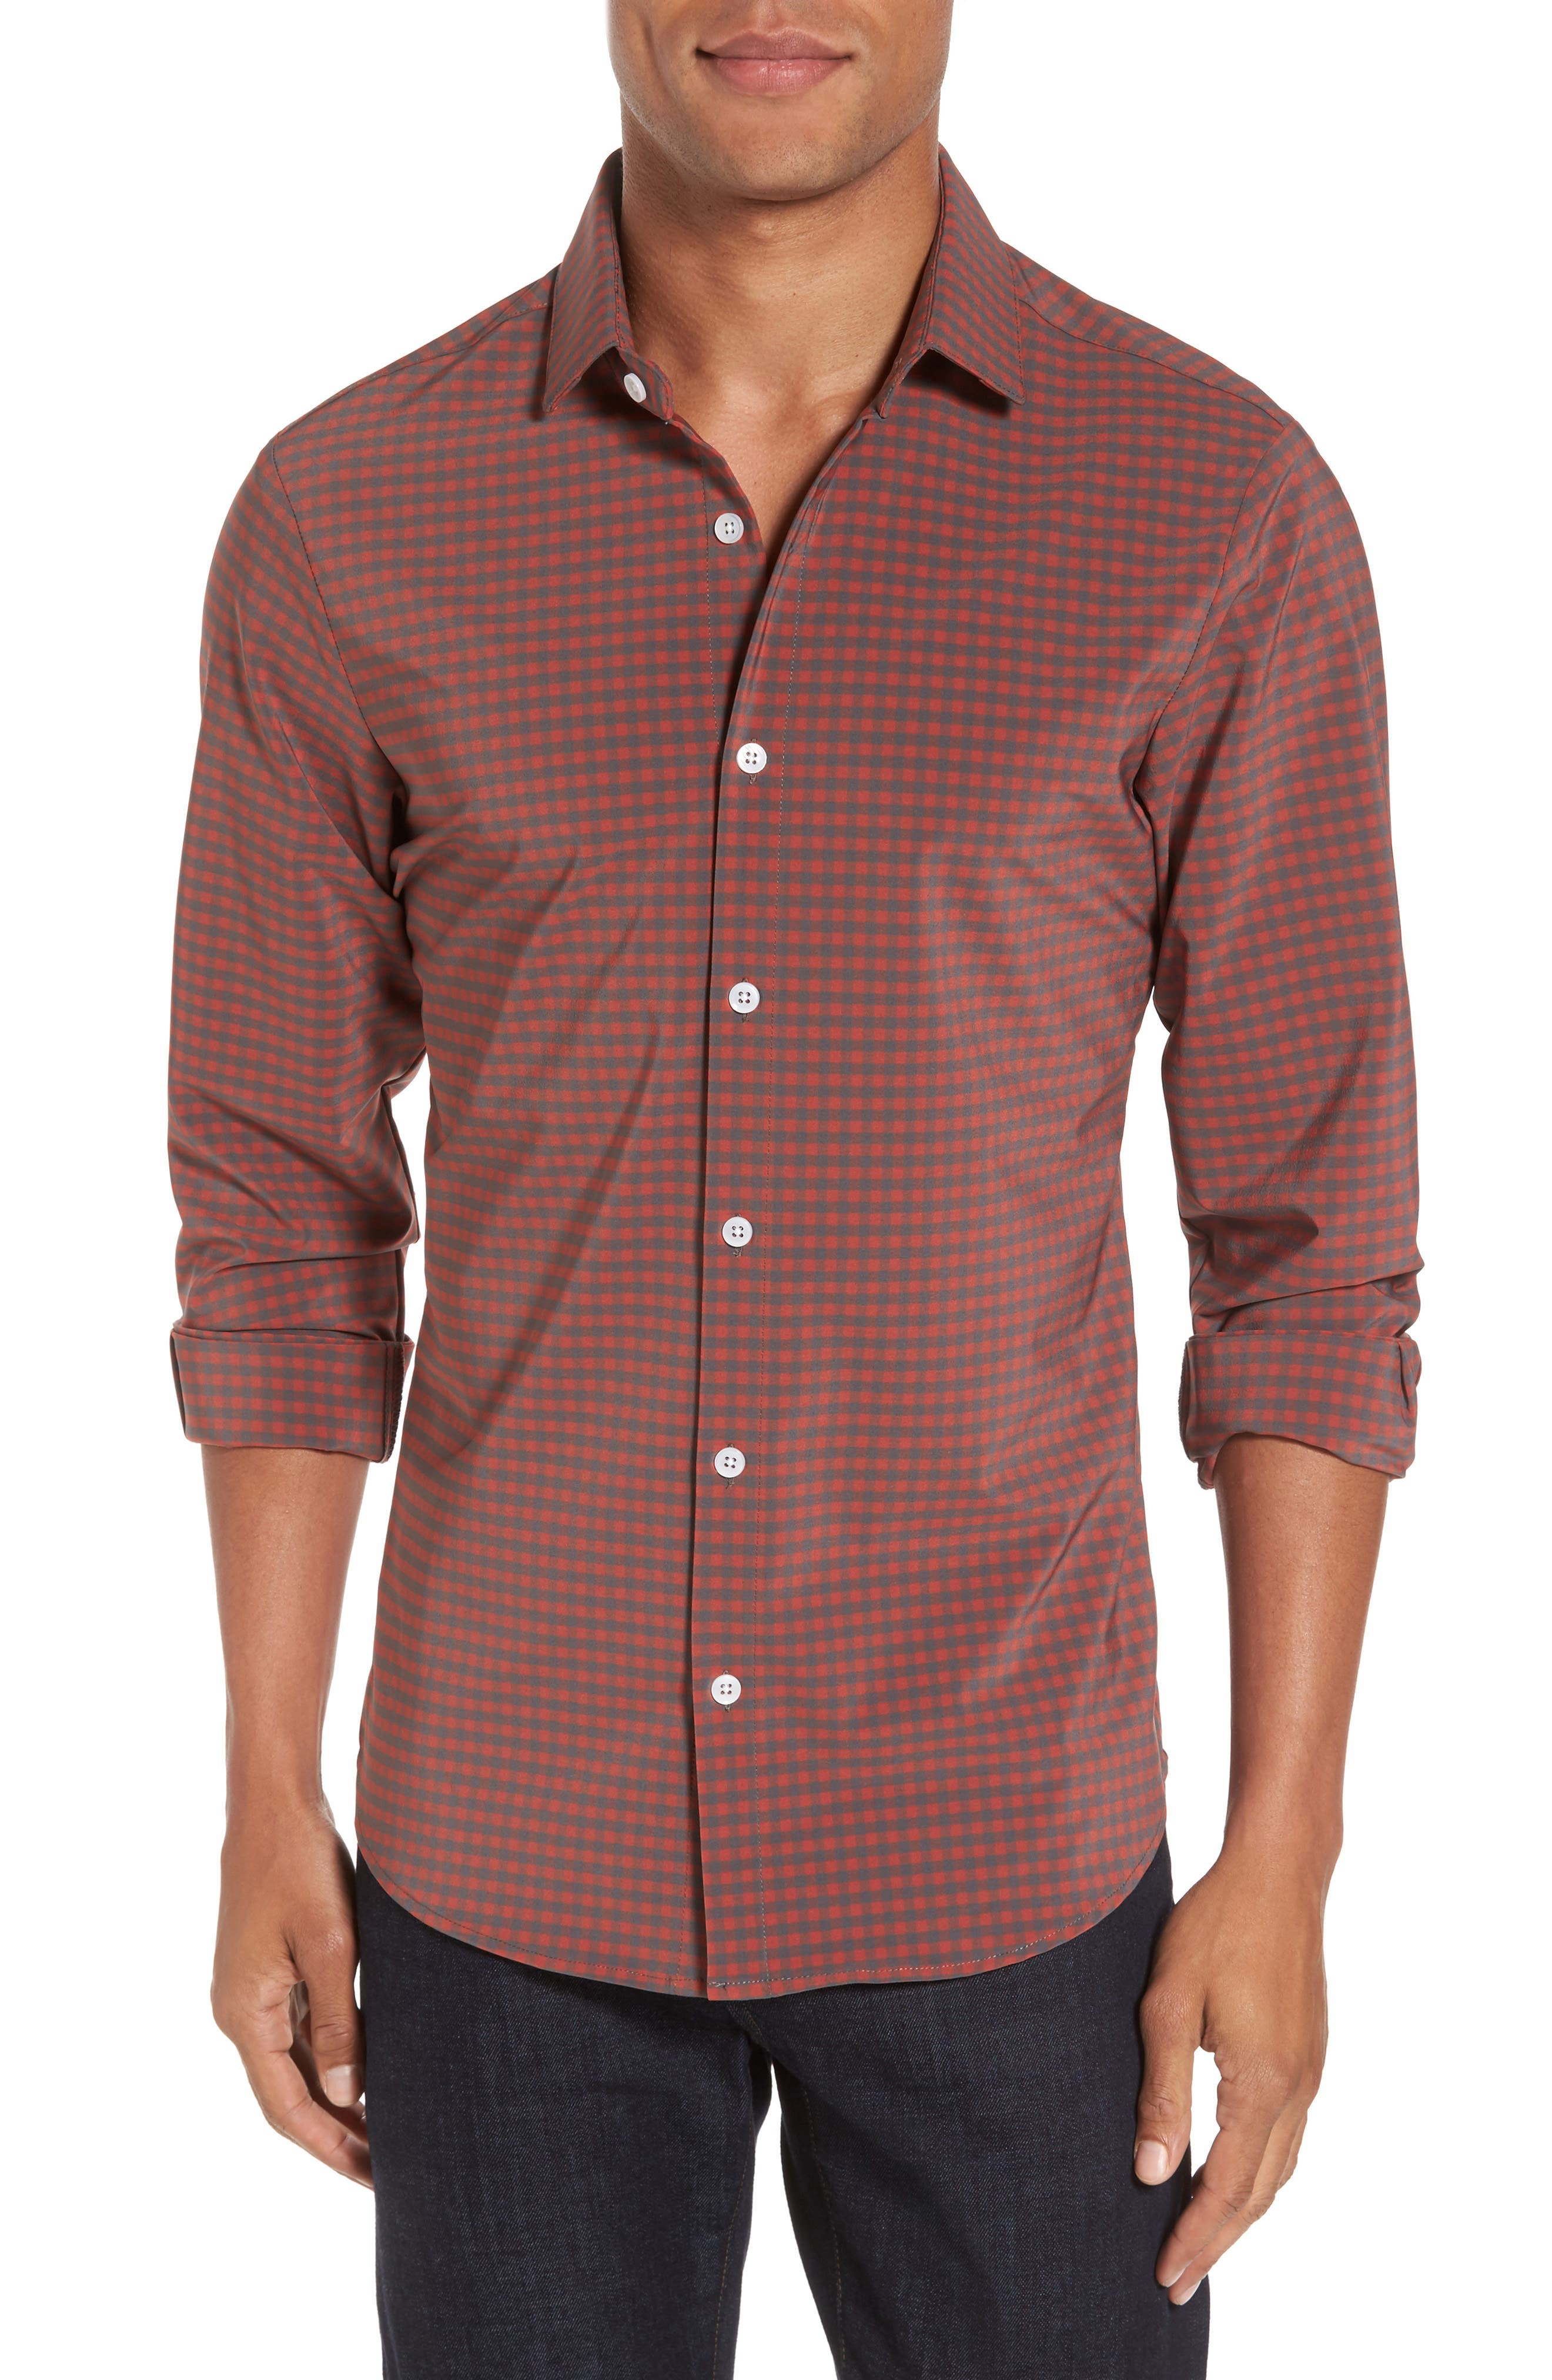 Douglas Grey & Chili Check Sport Shirt,                         Main,                         color, RED